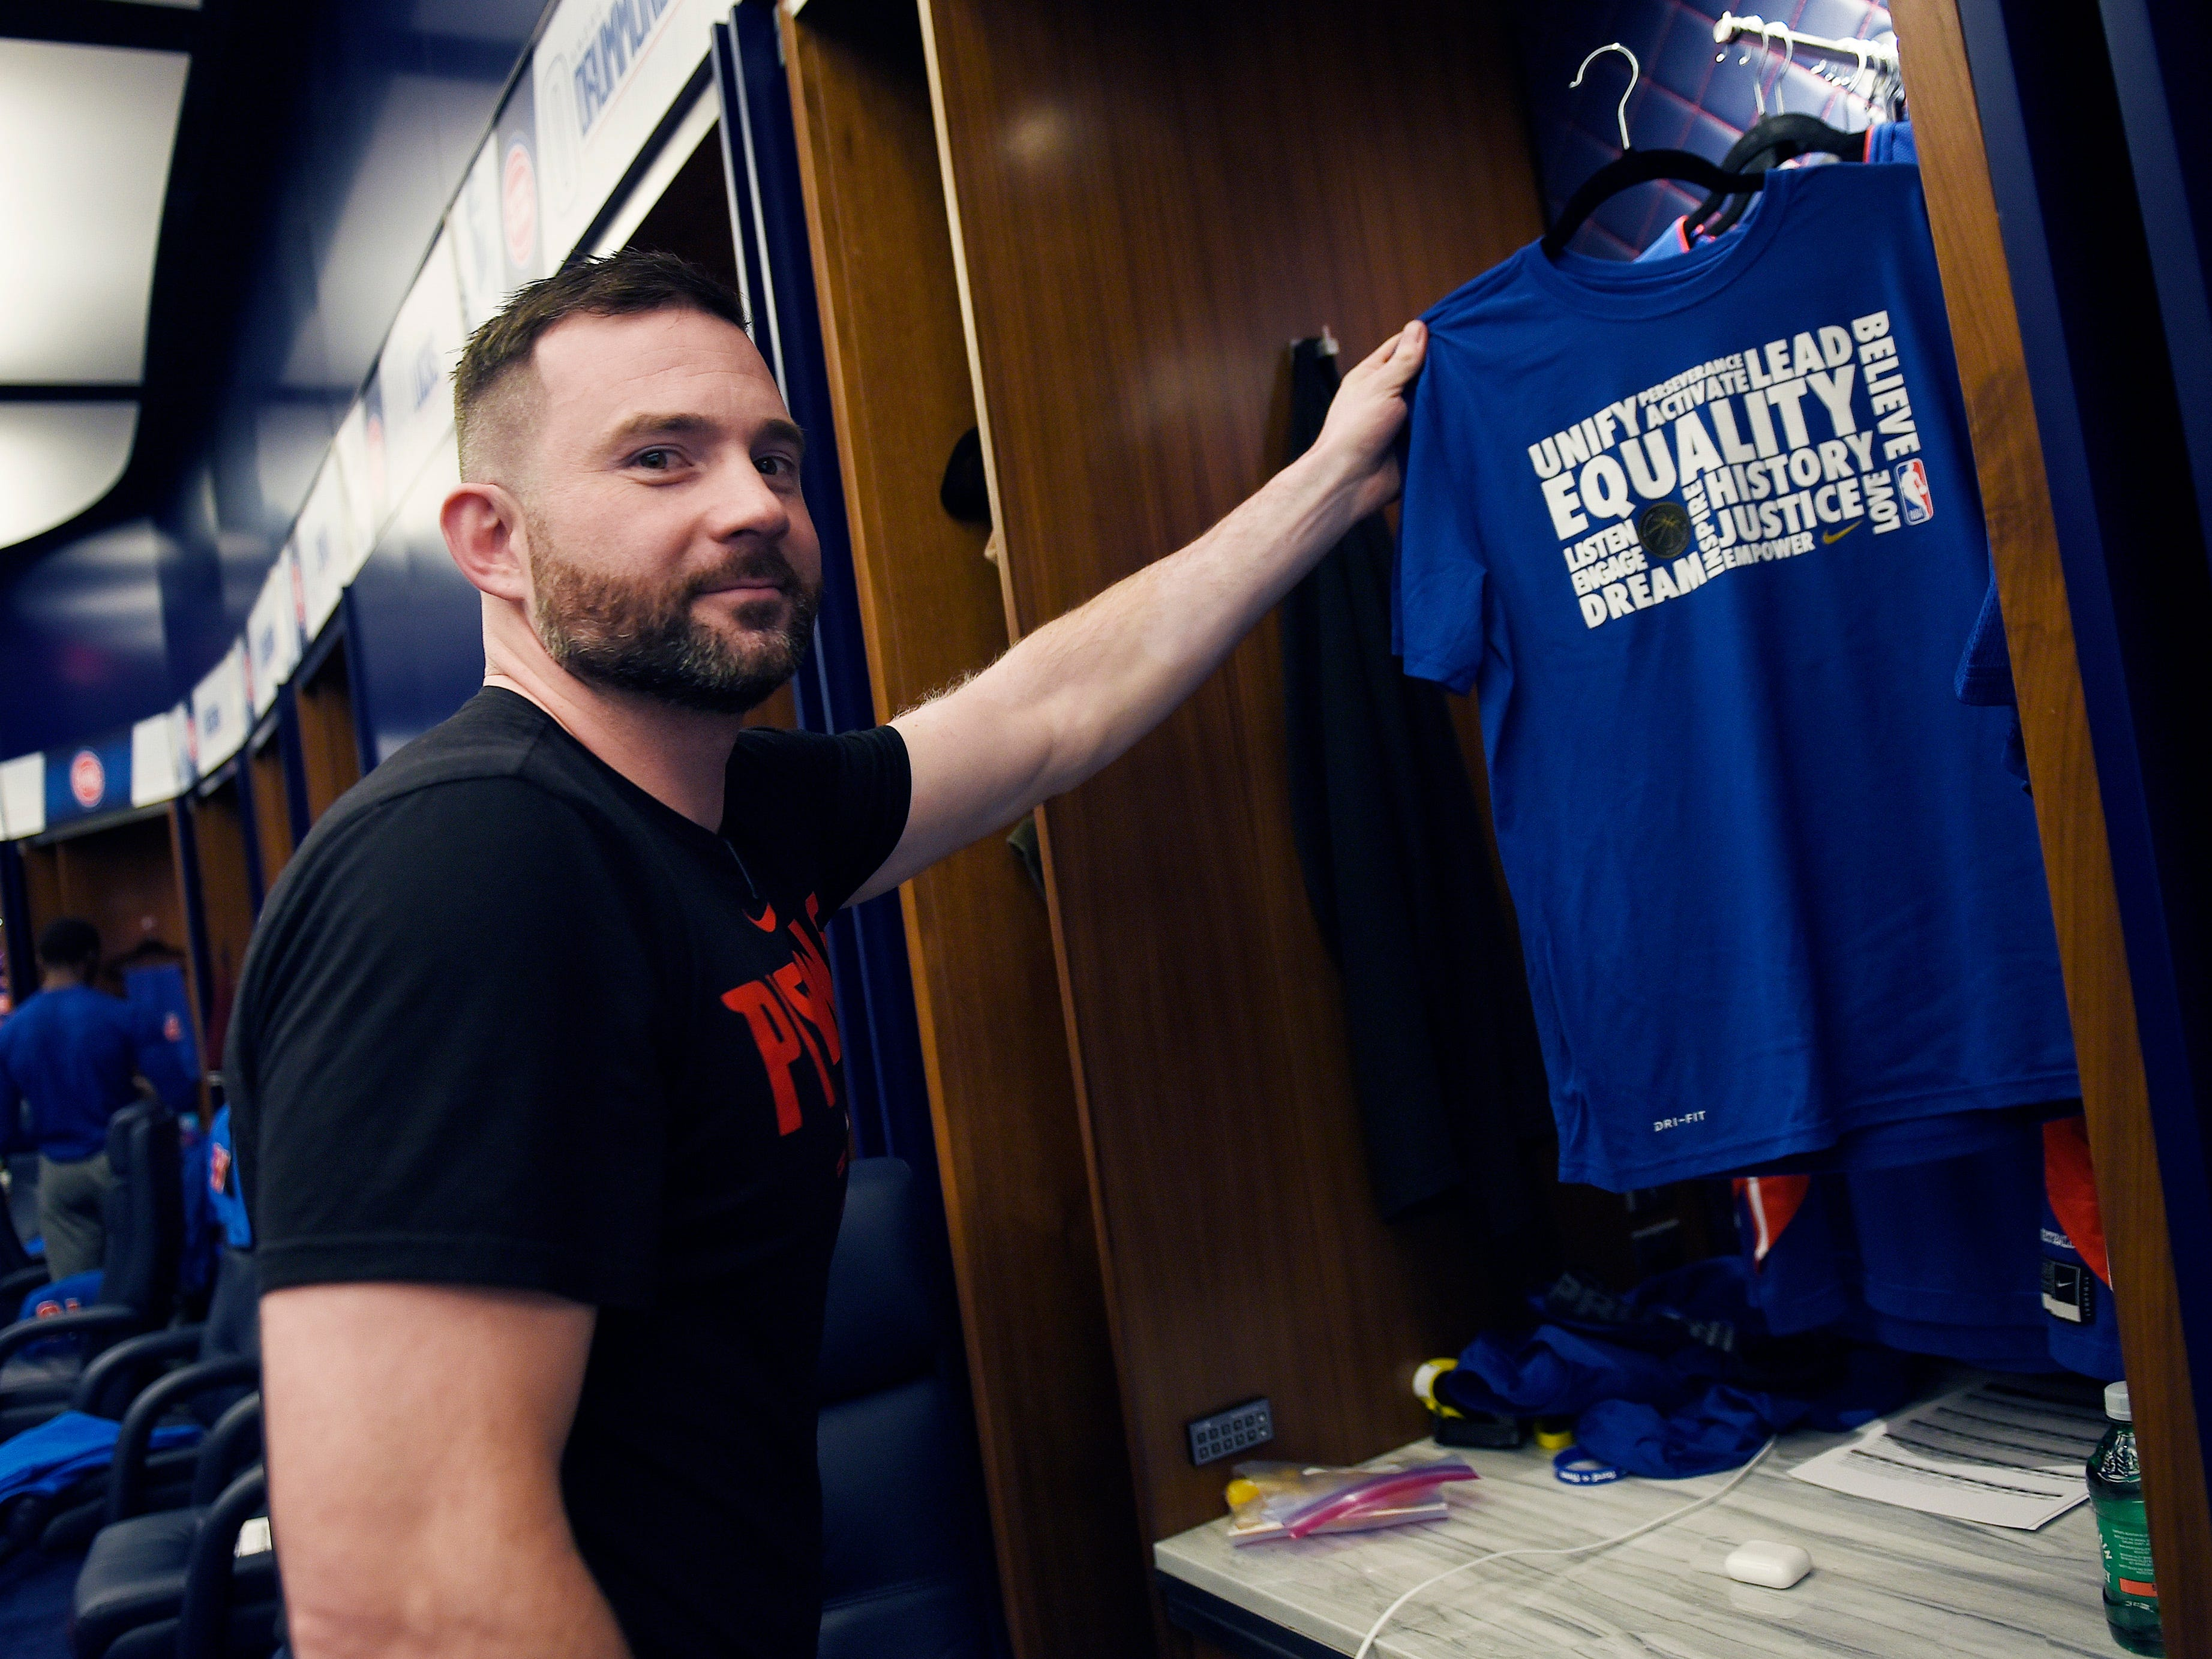 John Coumoundouros, equipment manager, hangs a Black History Month T-shirt in Blake Griffin's locker before the game. He and his staff are responsible for all game-day equipment needs of the players.